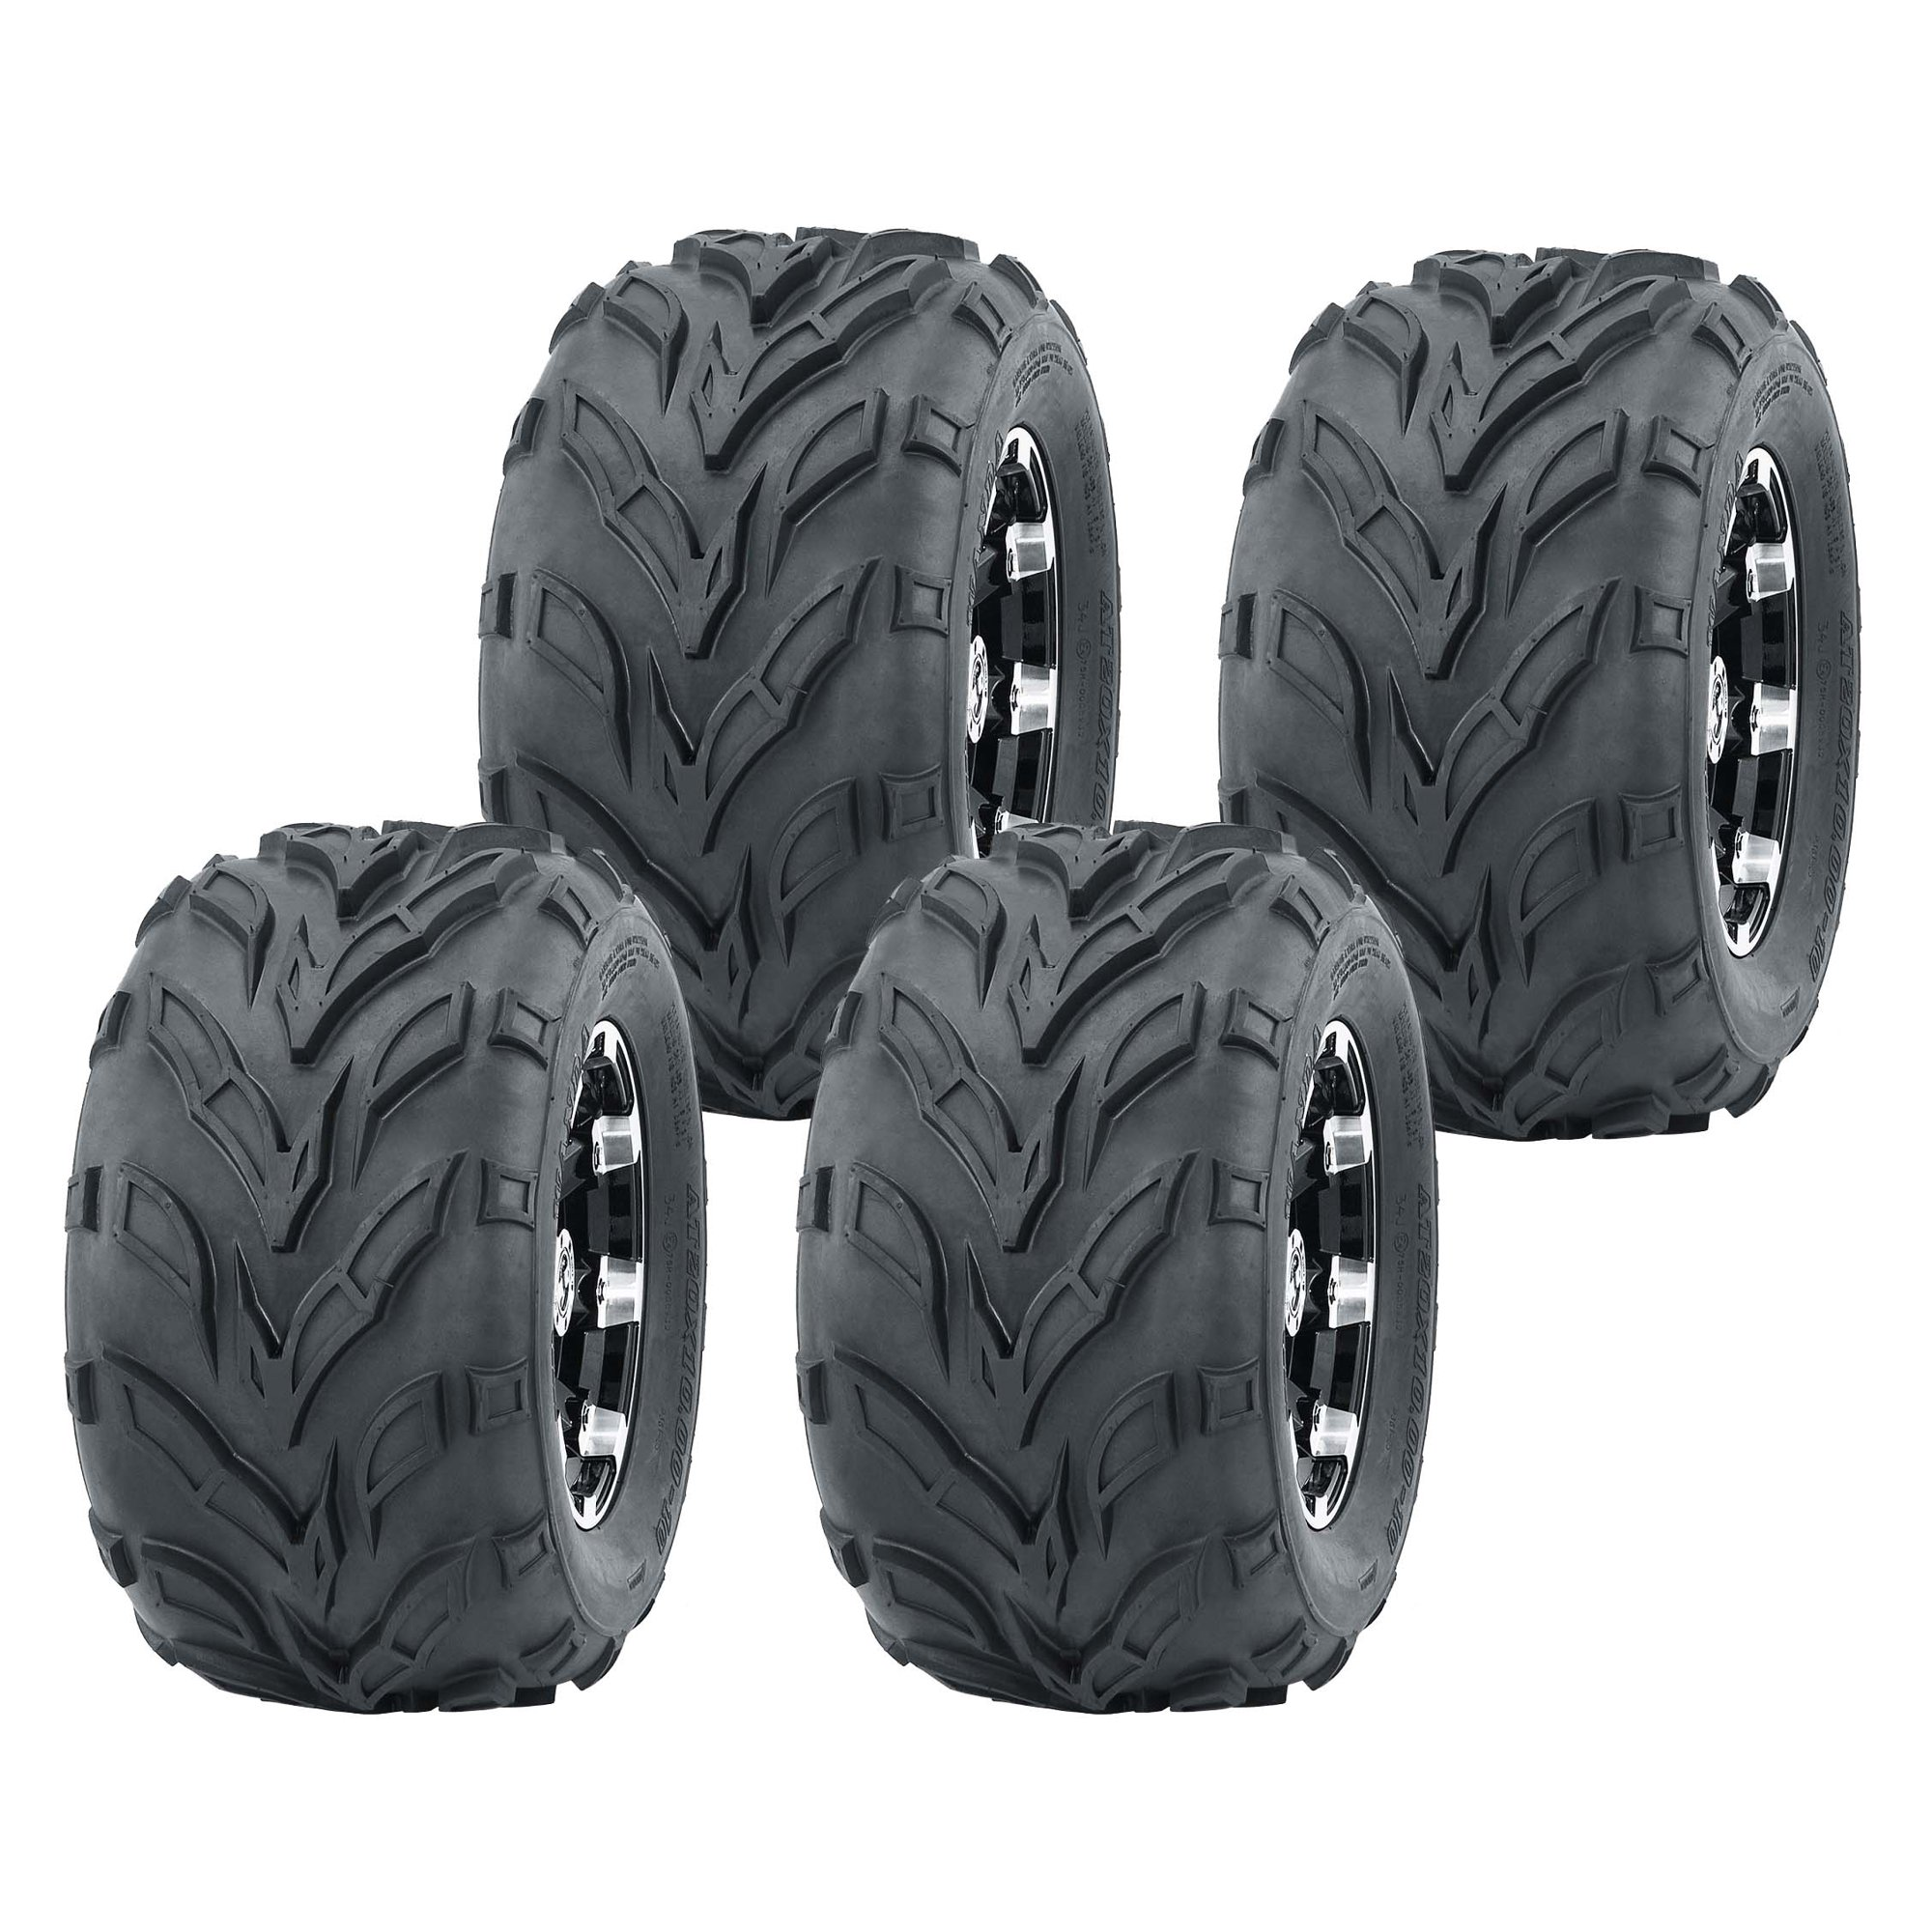 Set Of 4 Wanda 145 70 6 Go Kart Tires 145x70x6 145x70 6 Walmart